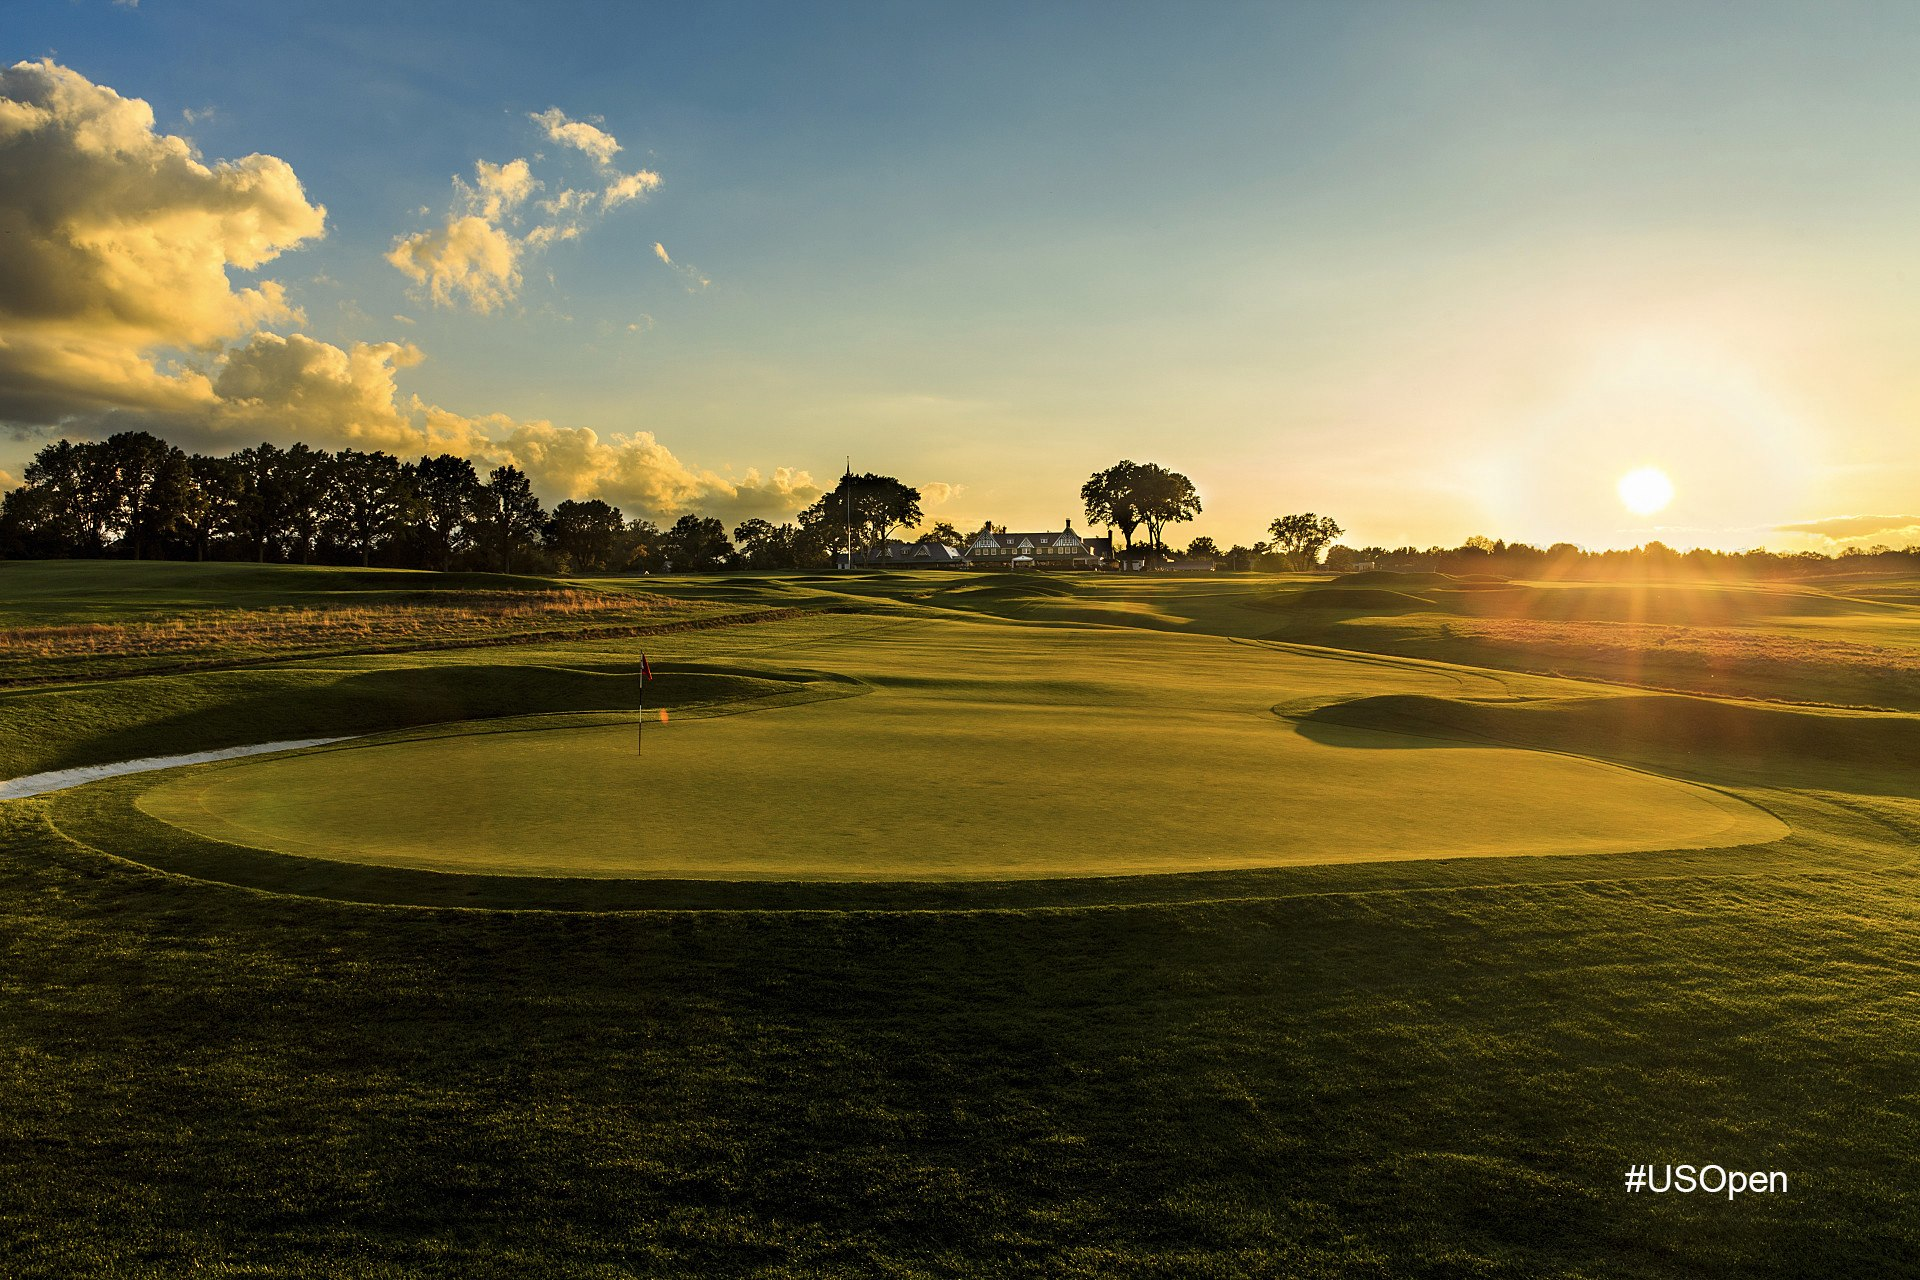 Fun Facts about the US Open